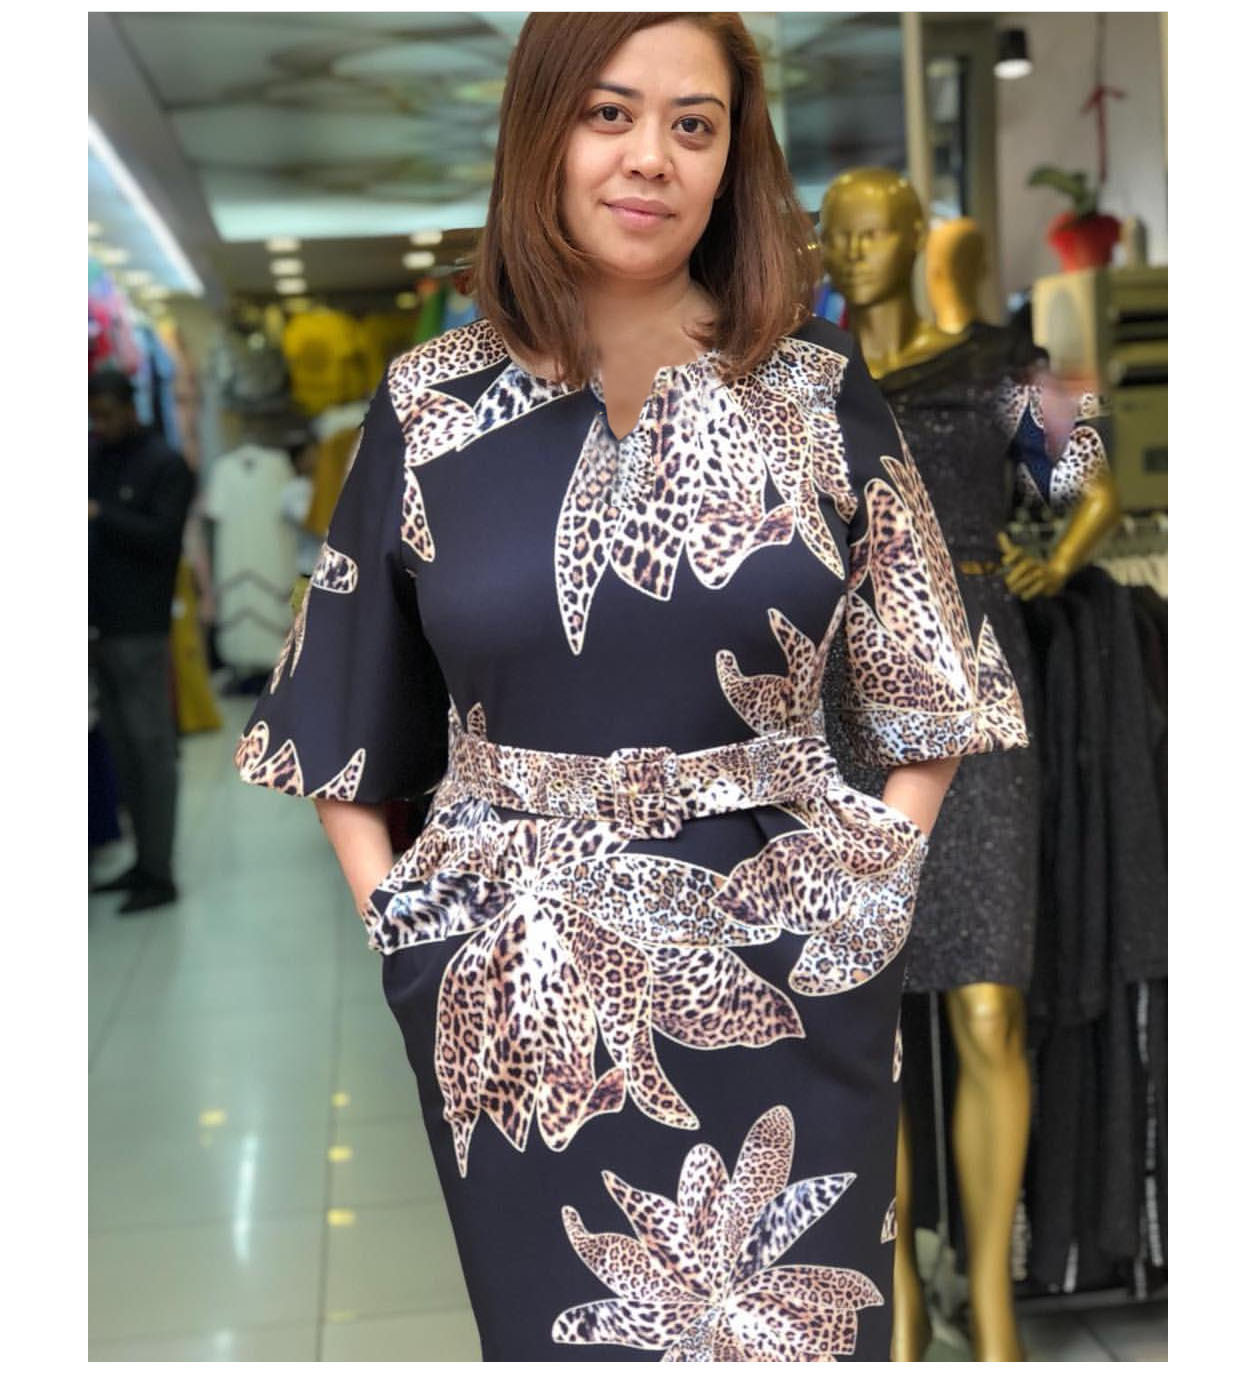 Woman Leopard Printed V-neck Fashion Fit Clothing Casual Dresses